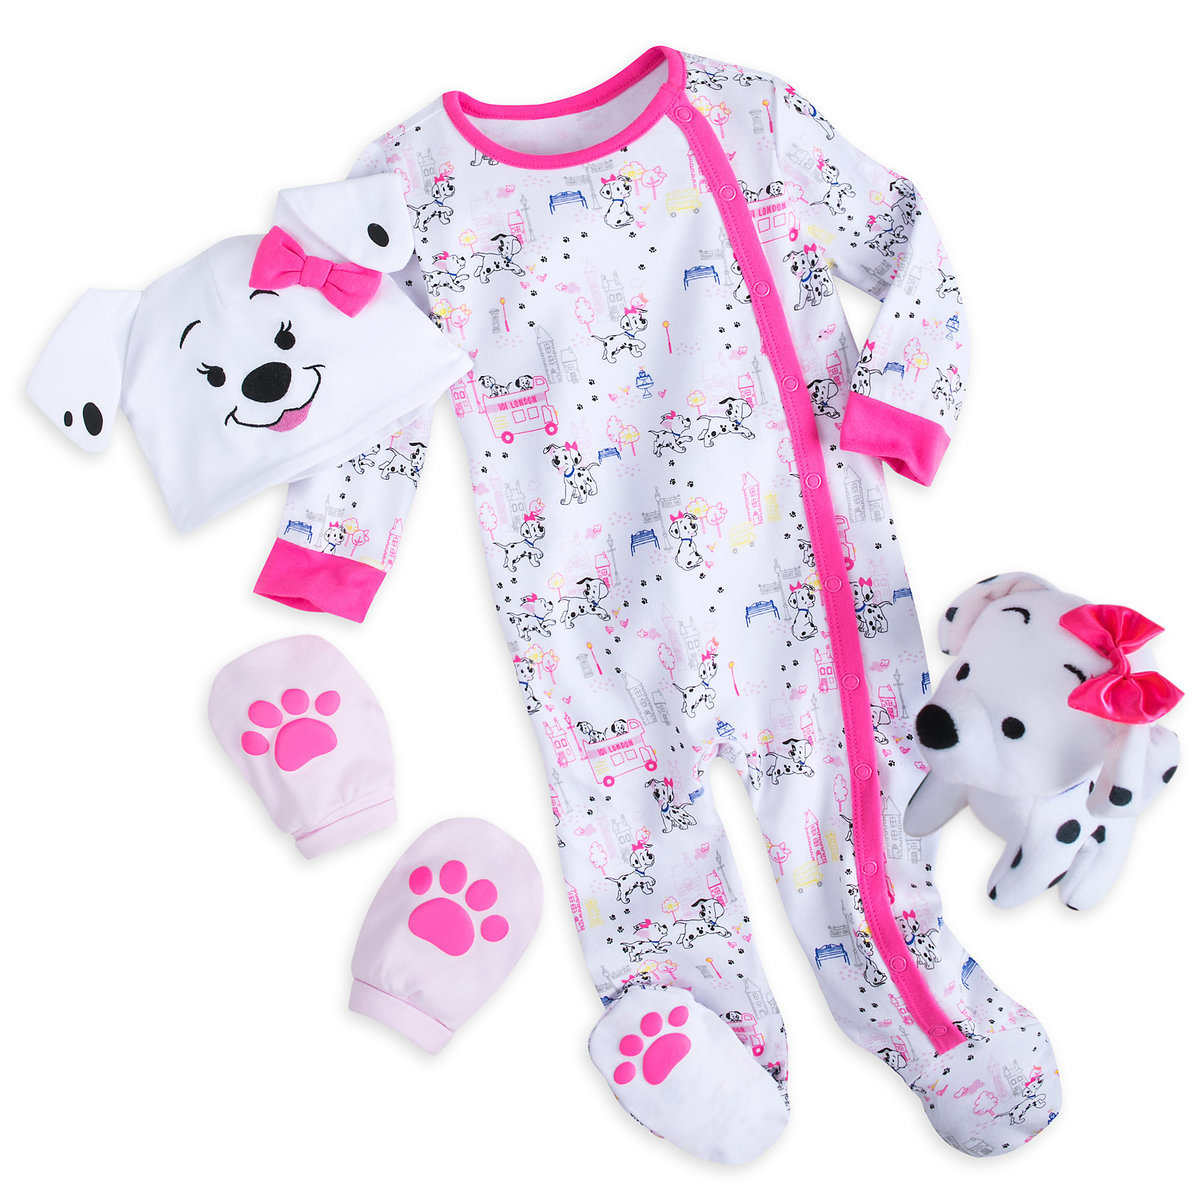 16a48c045 Product Image of 101 Dalmatians Gift Set for Baby - Pink # 1